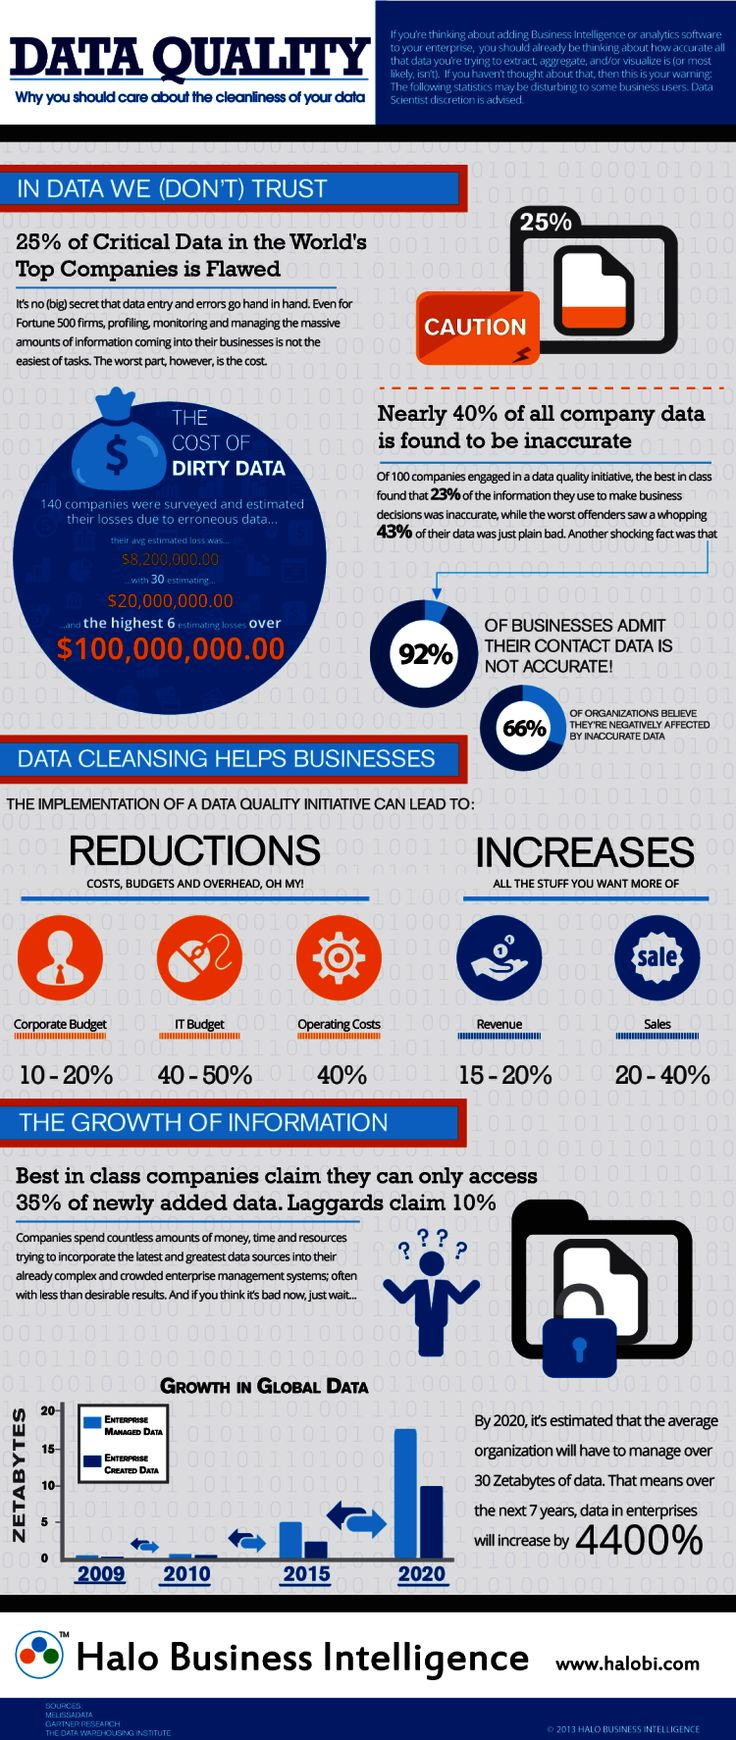 Data quality or why you should care about your data cleanliness #BigData #cloud #infographic